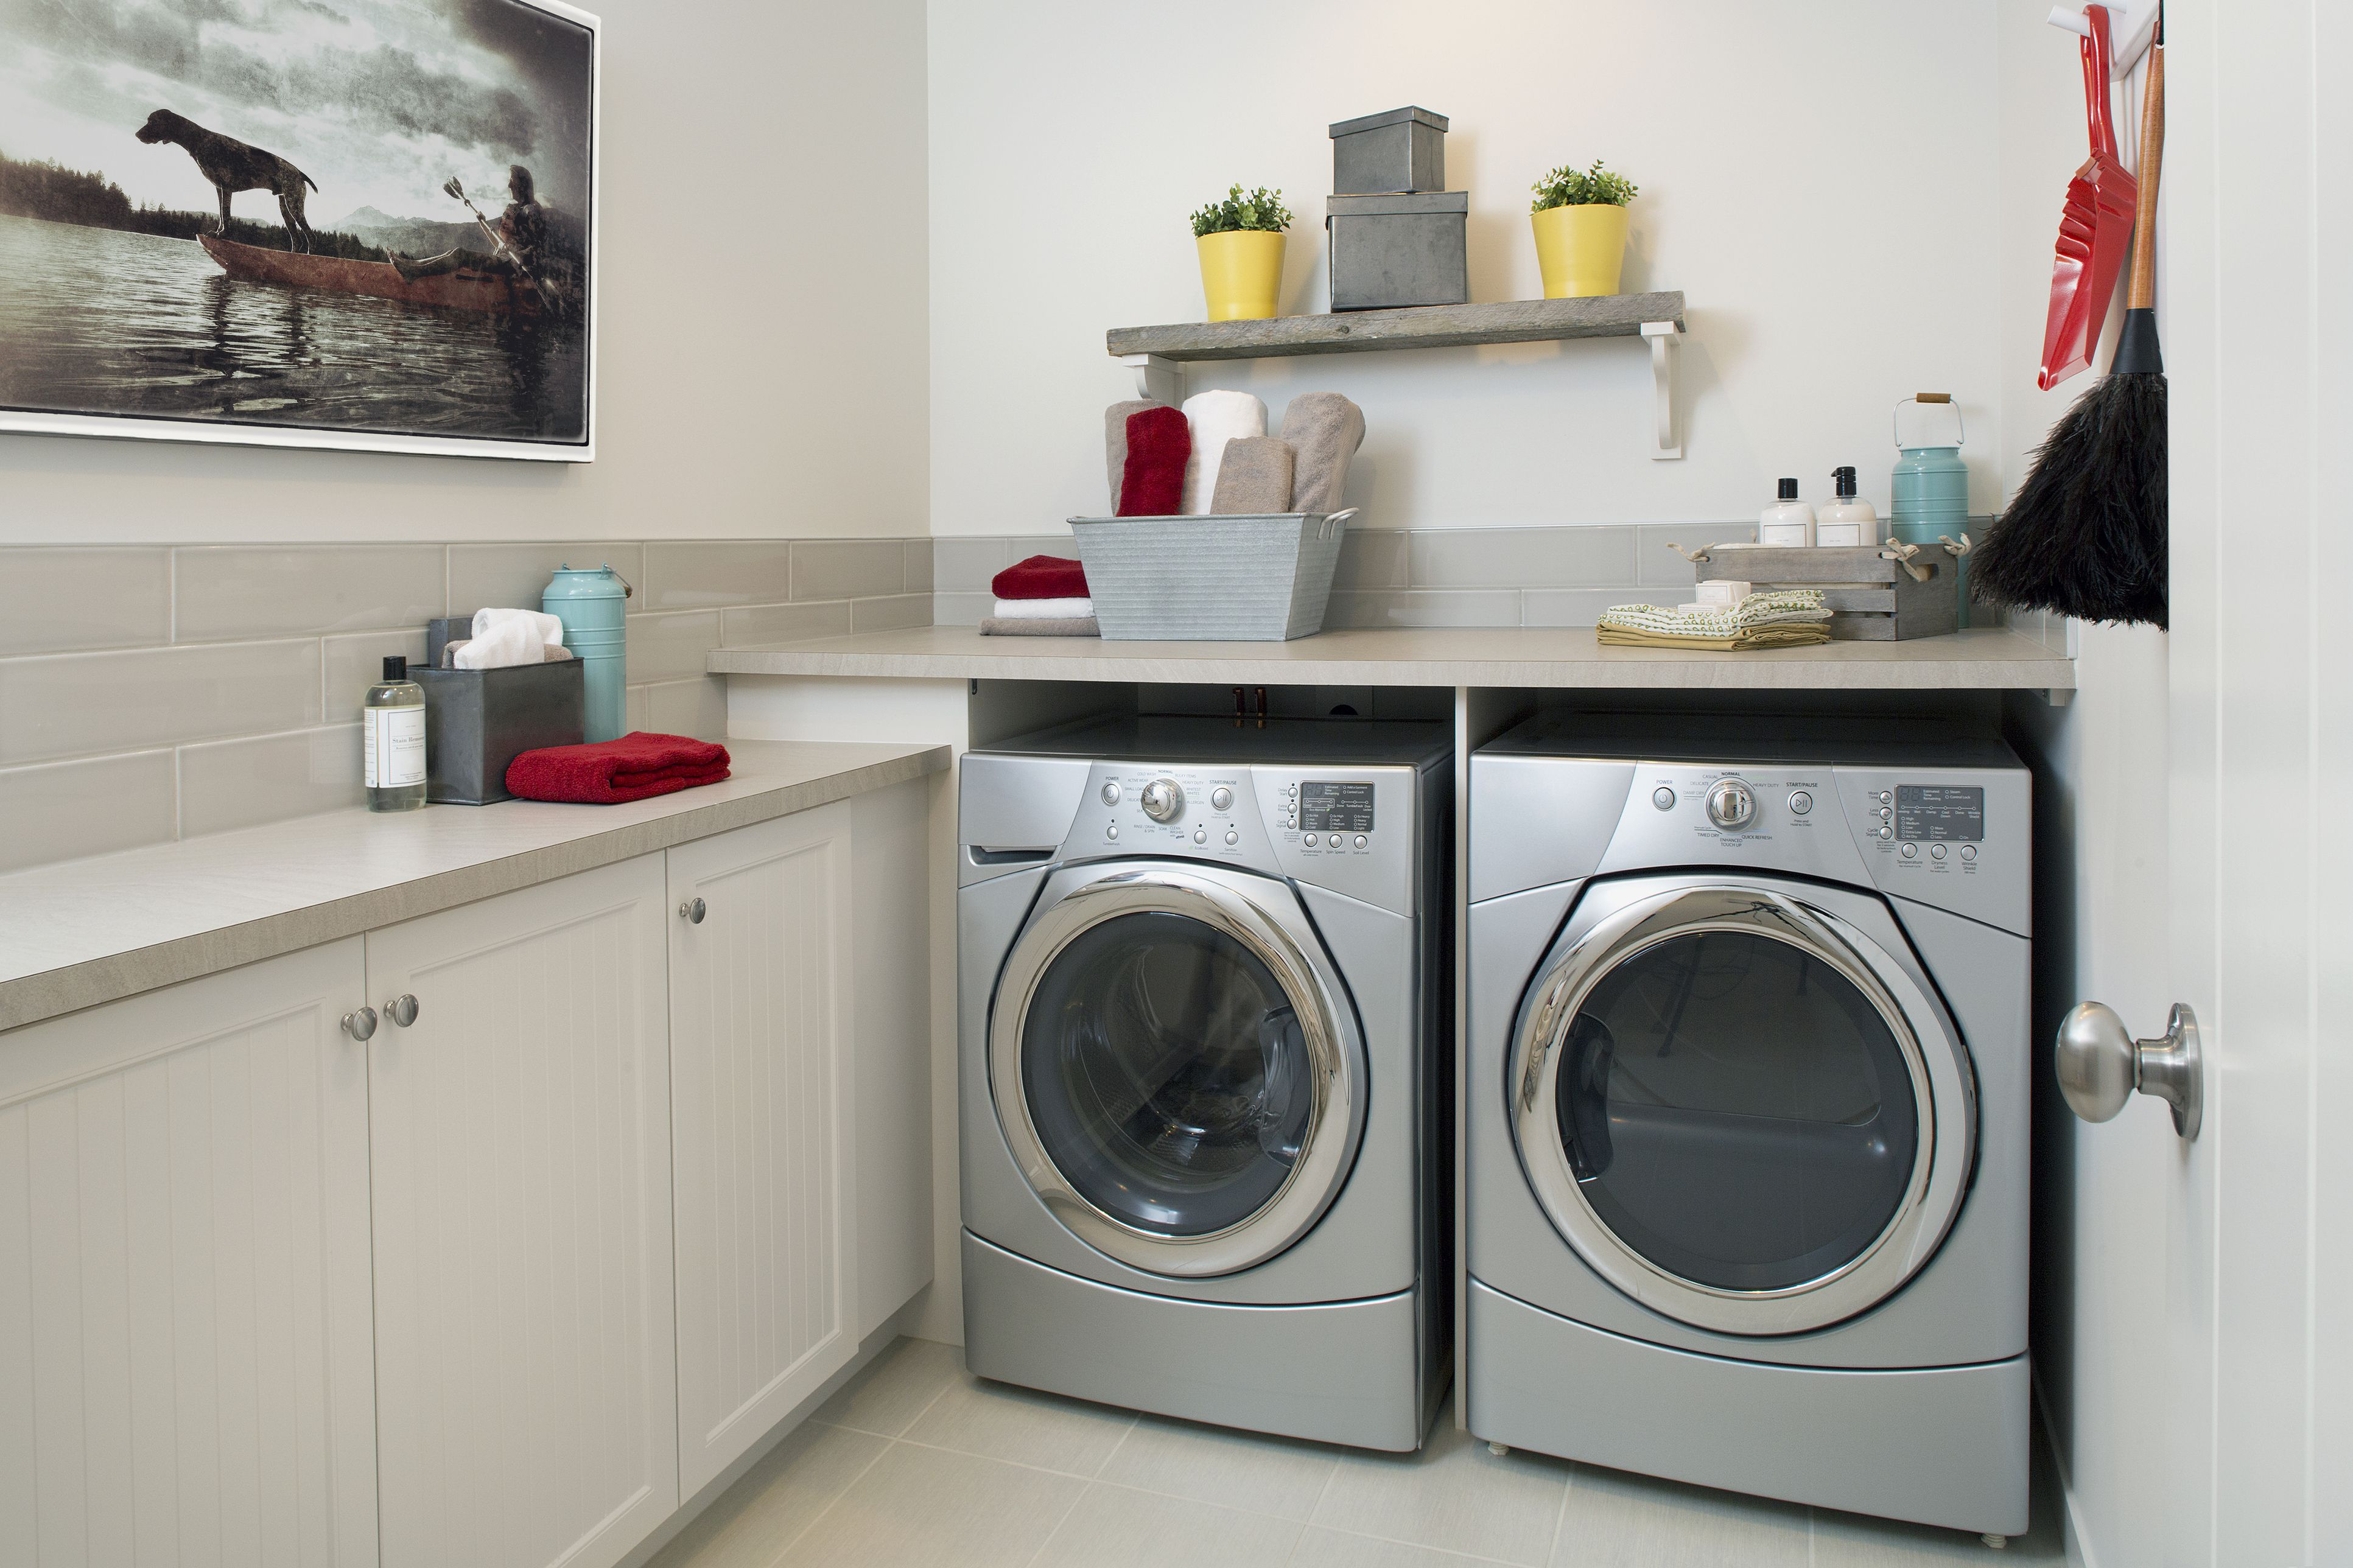 The 9 Best Washing Machines to Buy in 2018